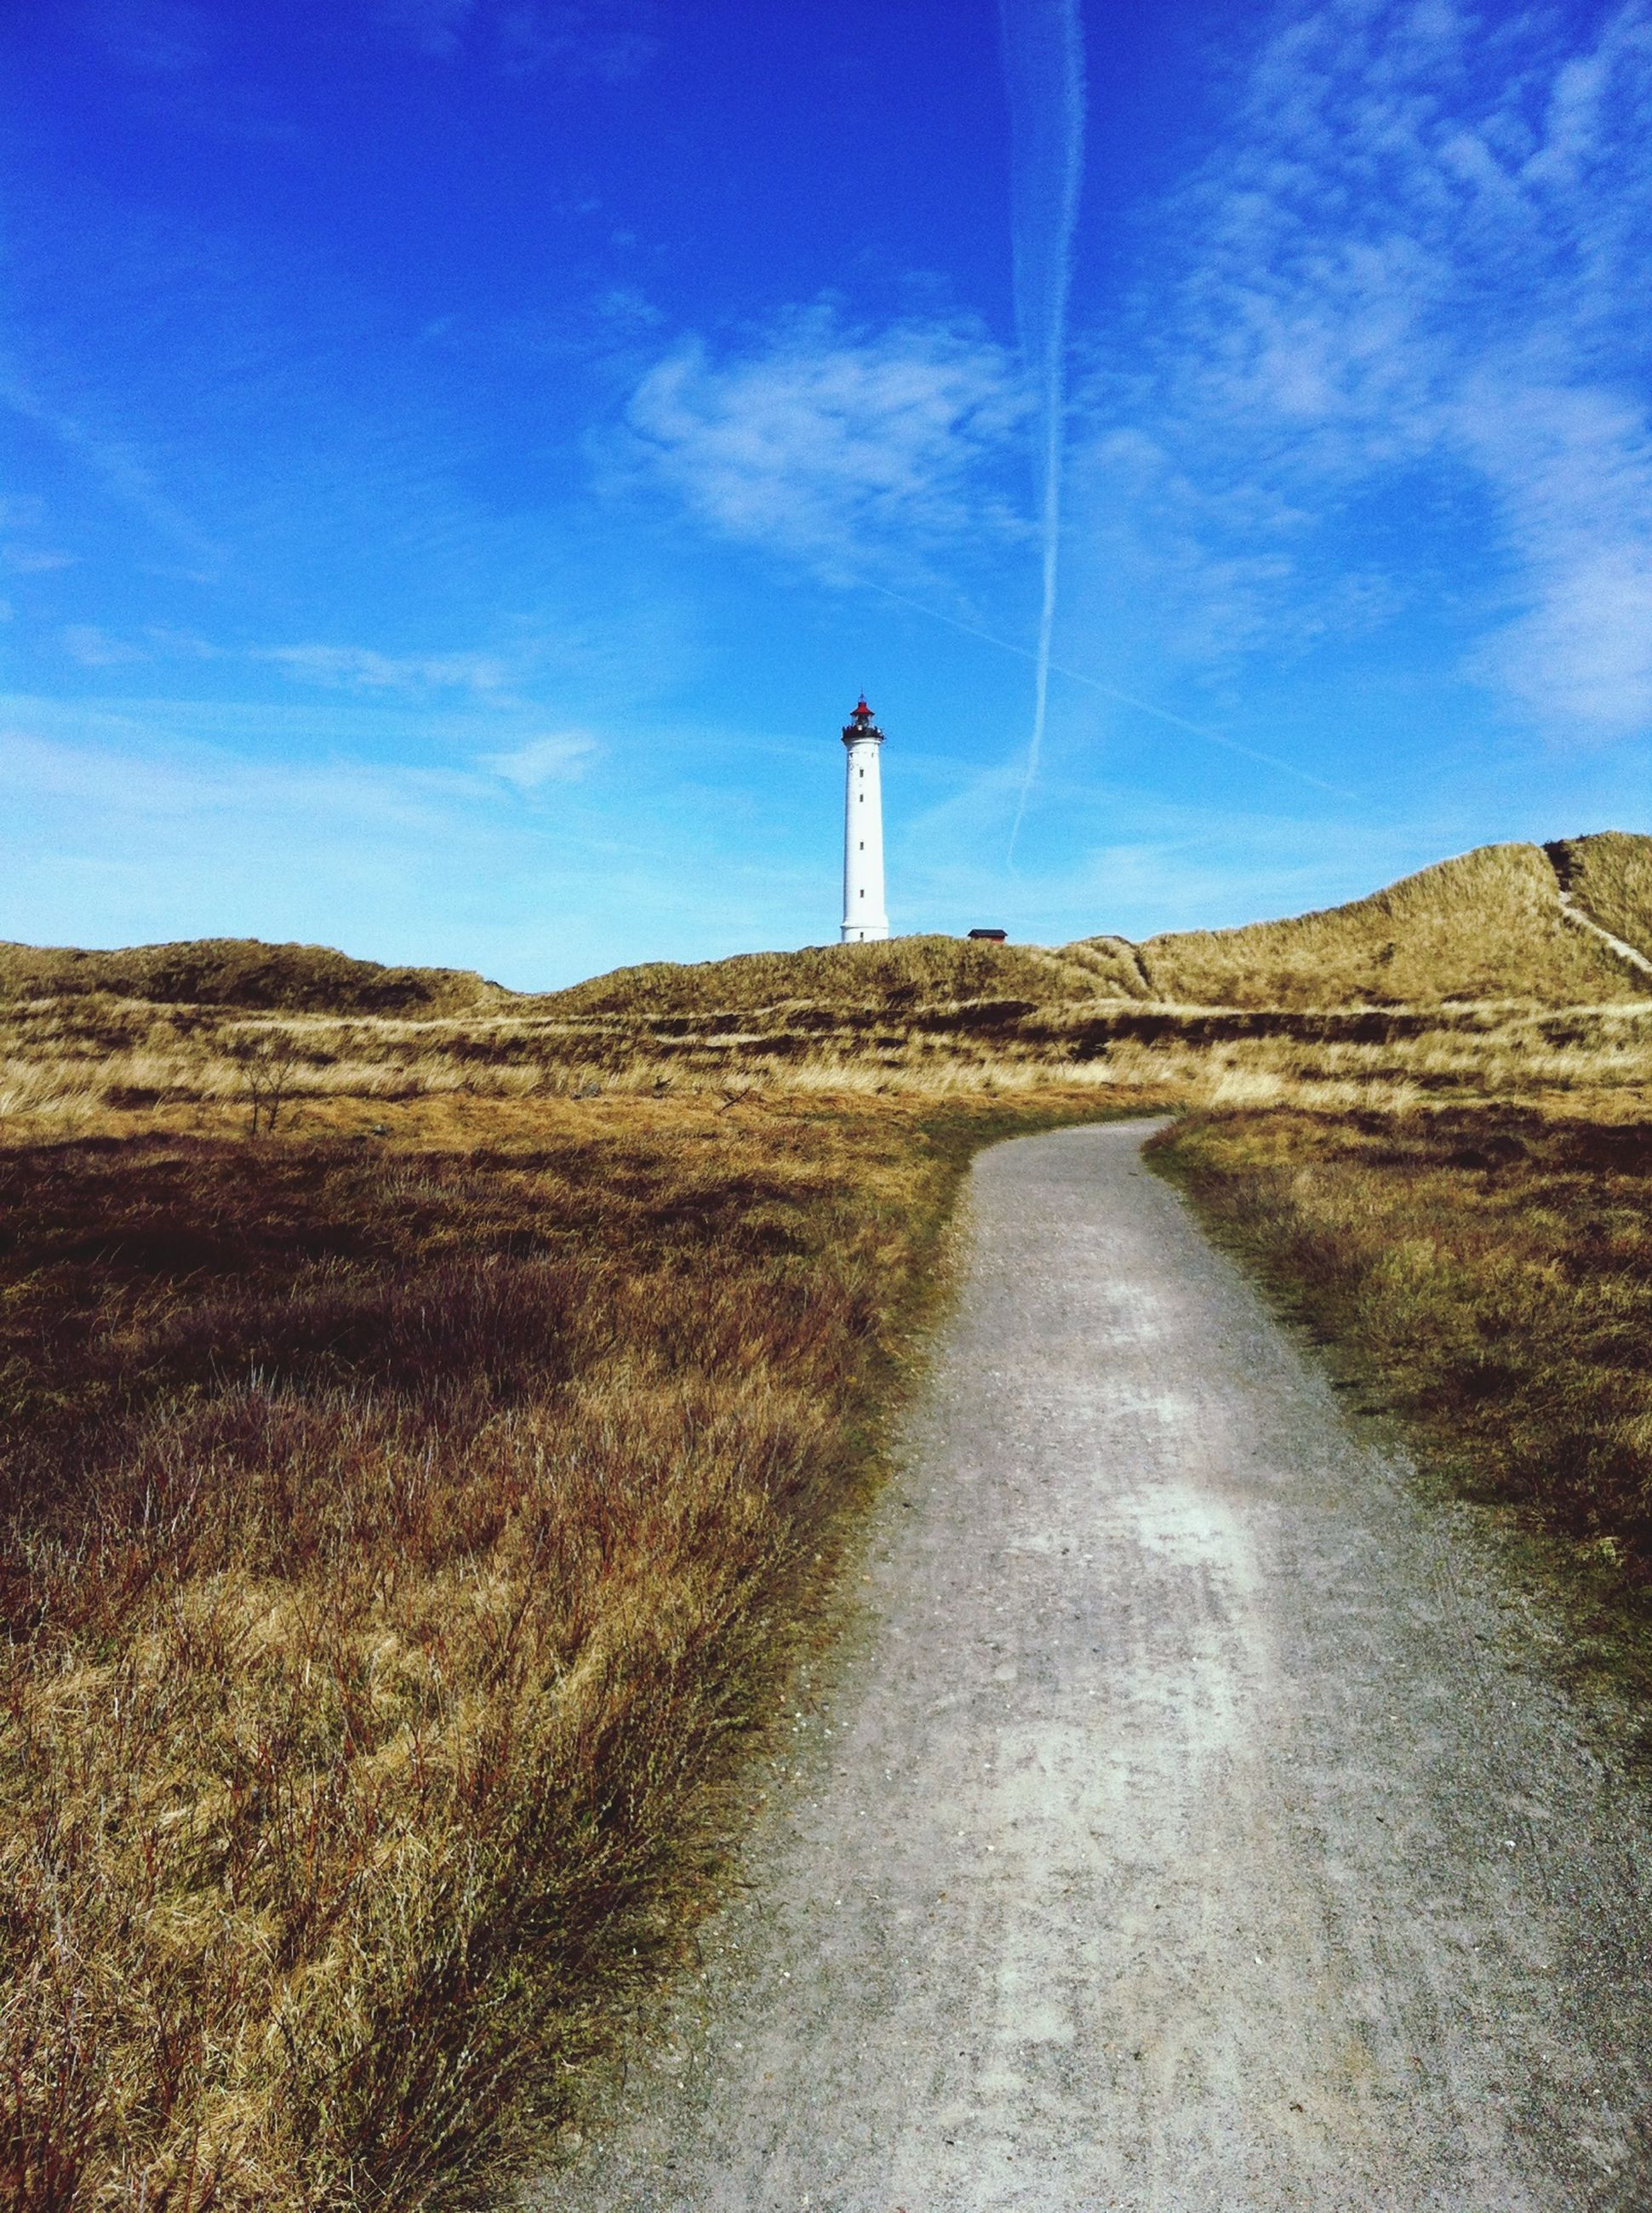 the way forward, guidance, sky, lighthouse, direction, built structure, landscape, tranquility, blue, grass, architecture, tranquil scene, building exterior, nature, day, cloud - sky, cloud, protection, leading, field